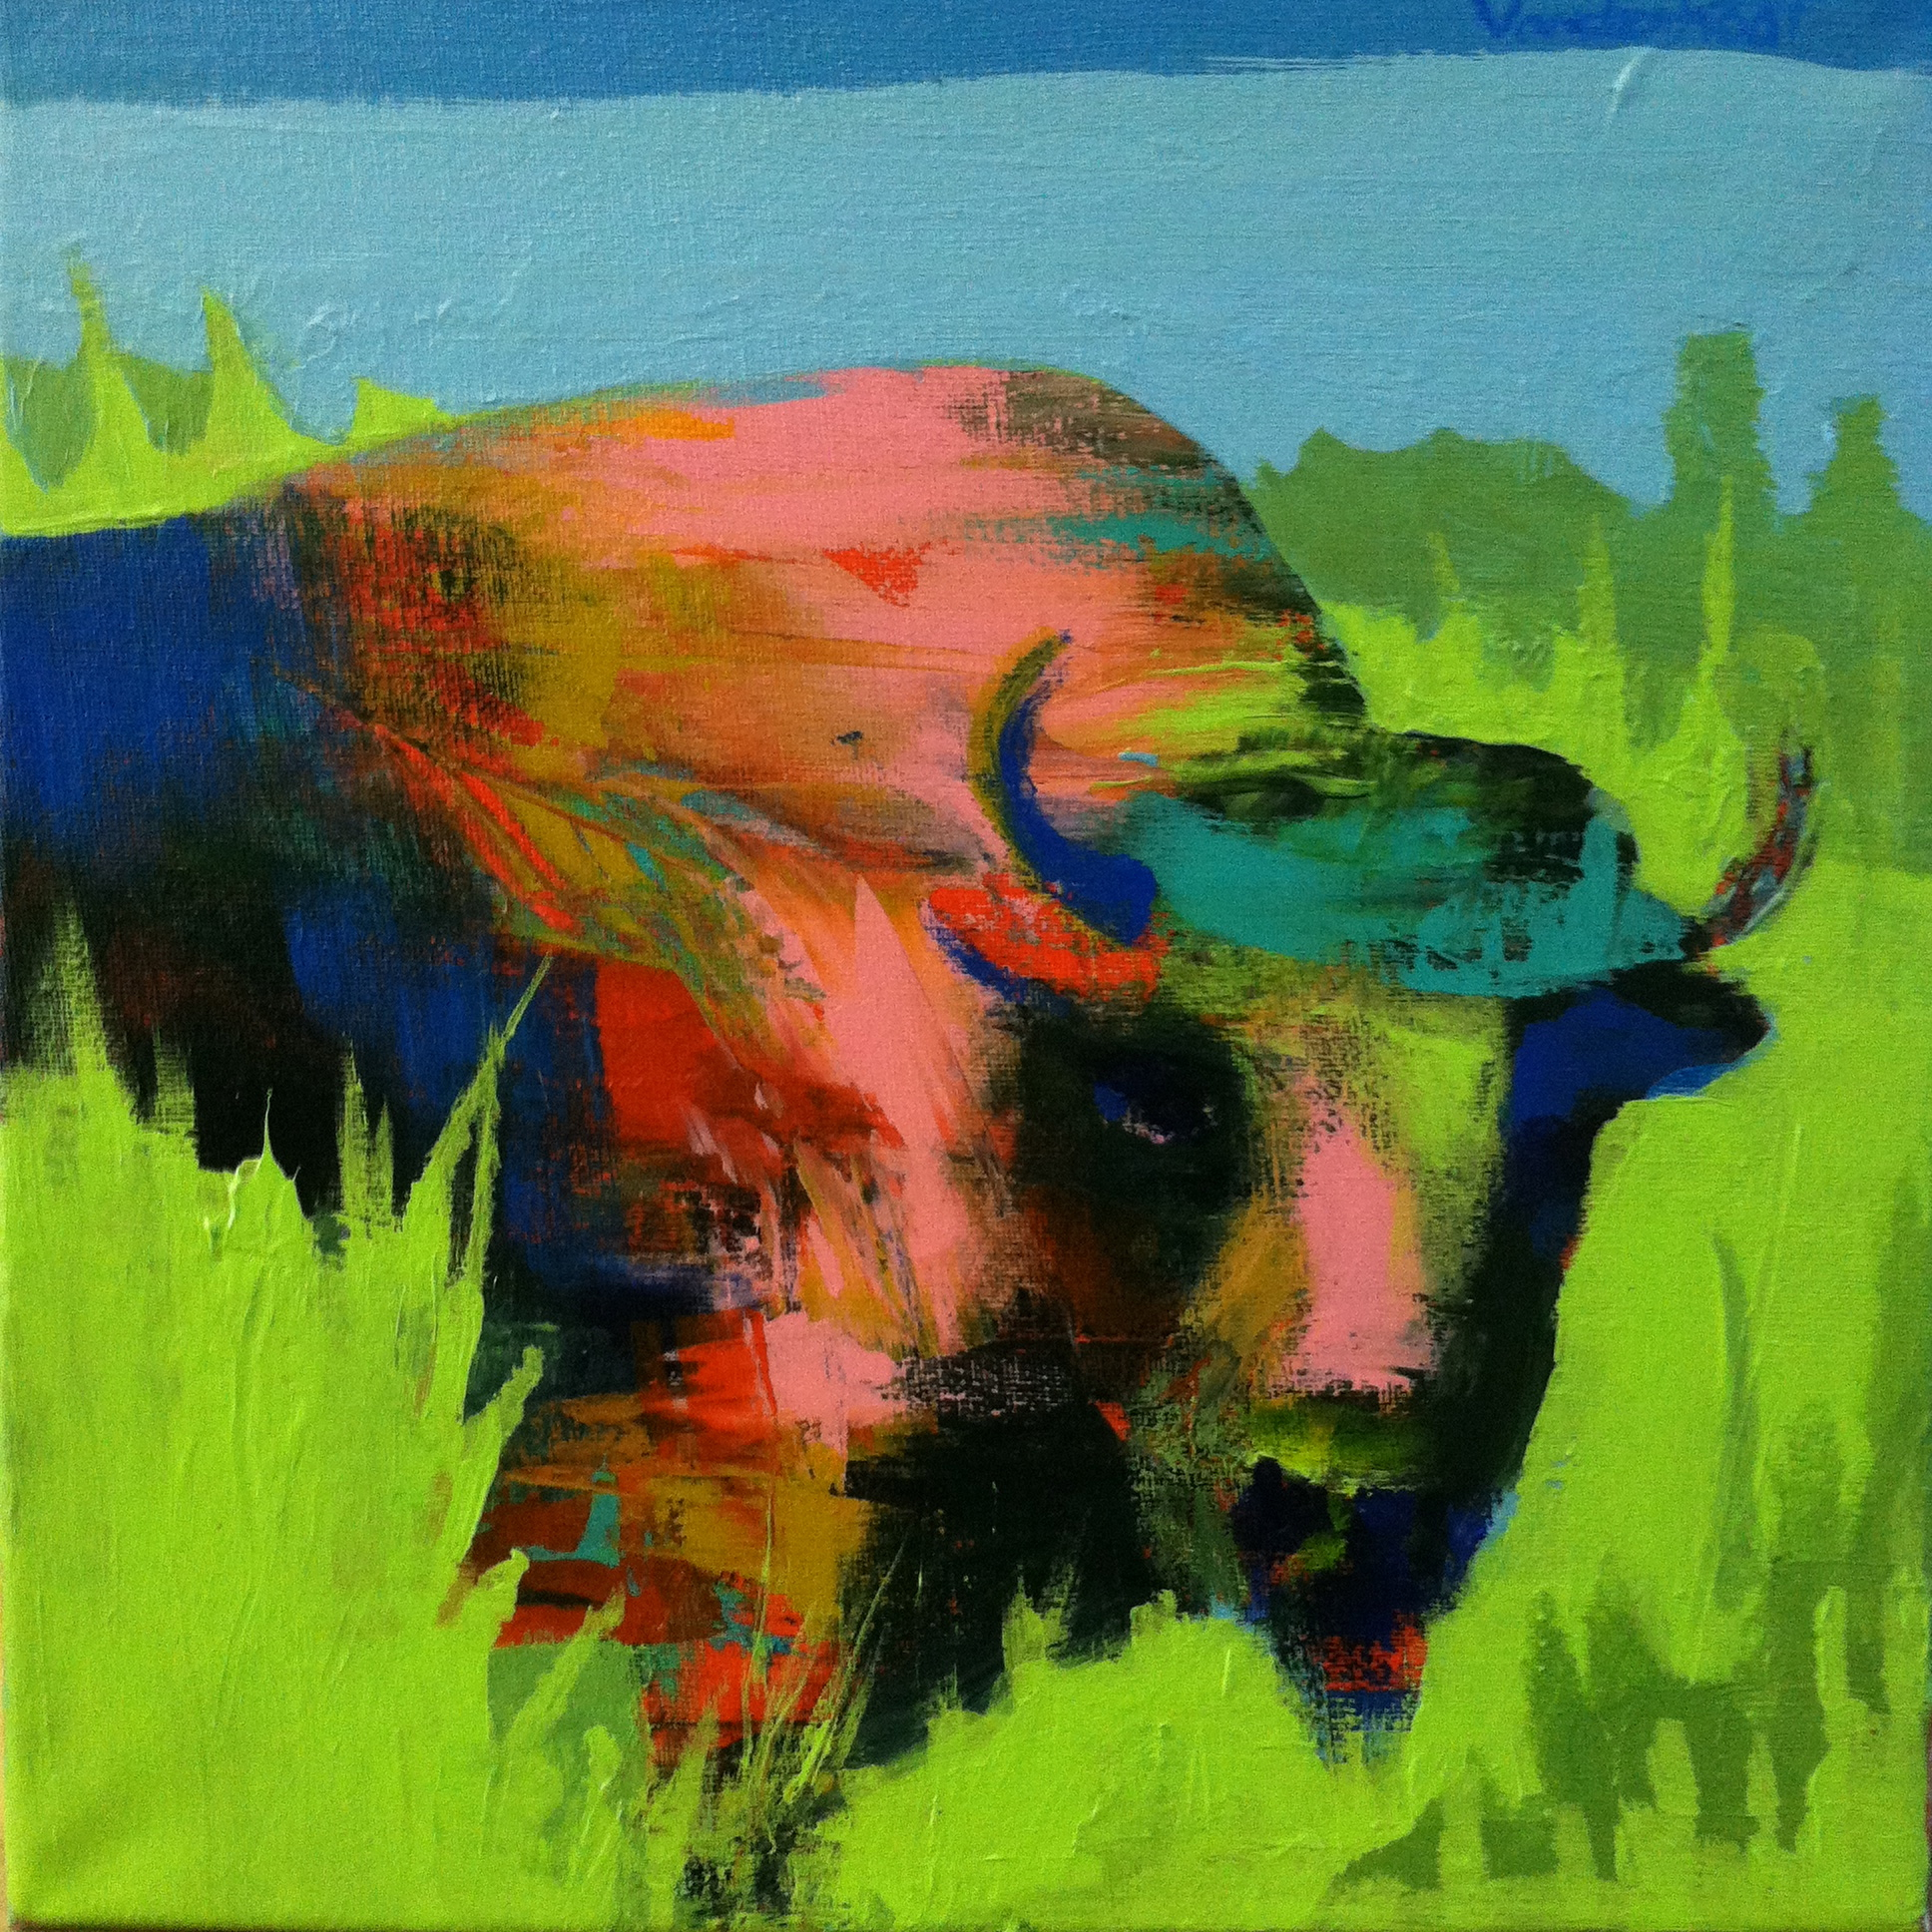 Bison in green, acrylic on canvas, 12x12 inches, 2015